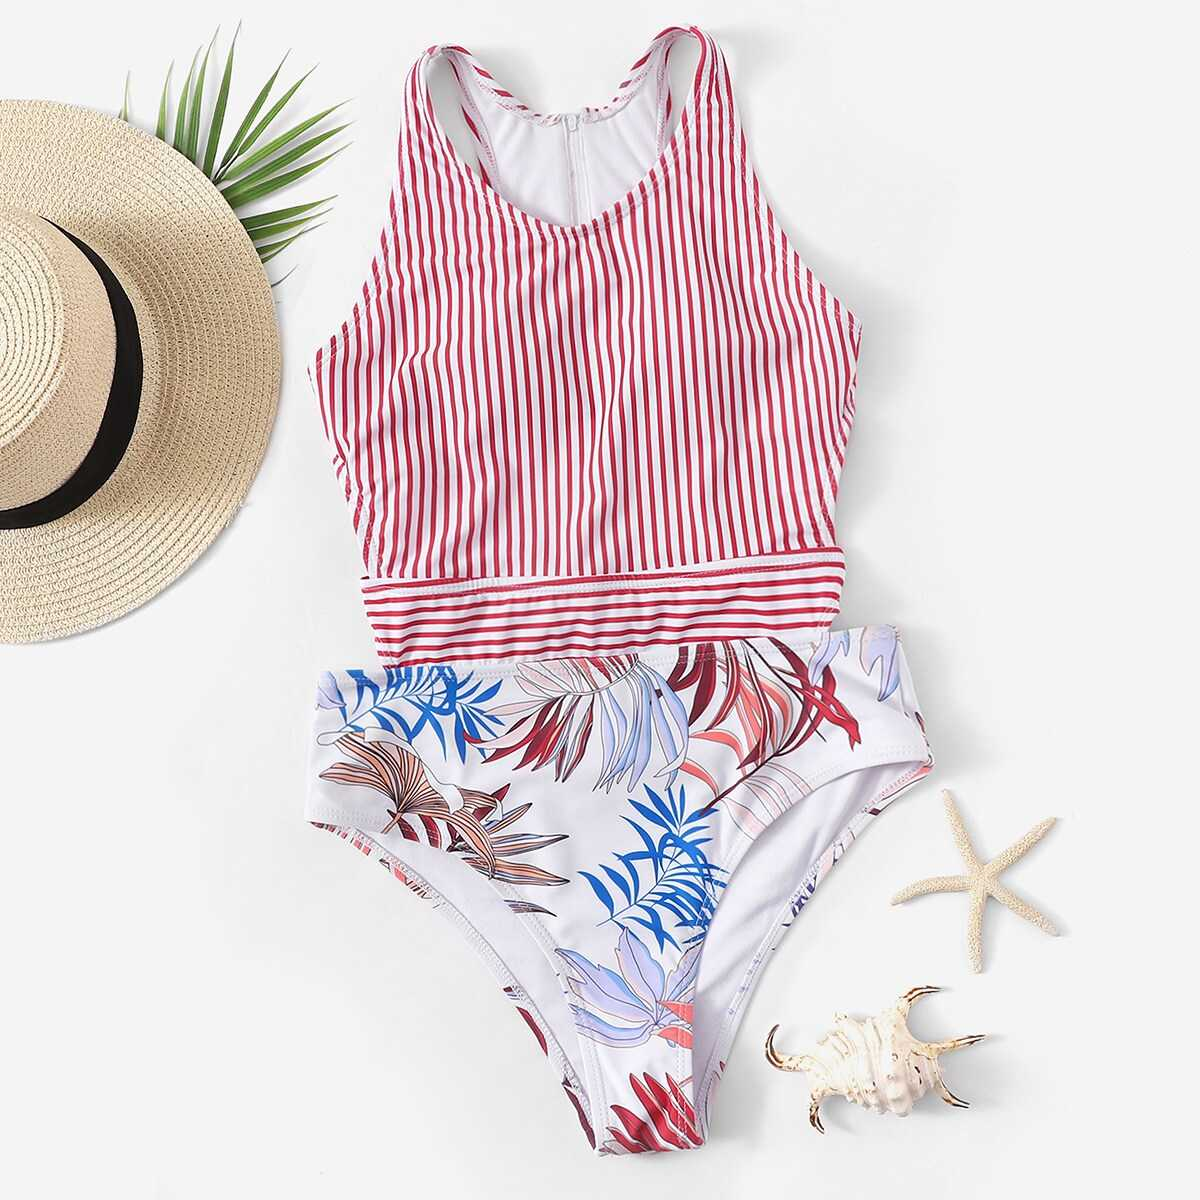 Random Leaf & Striped Cut-out One Piece Swim - Shein - GOOFASH